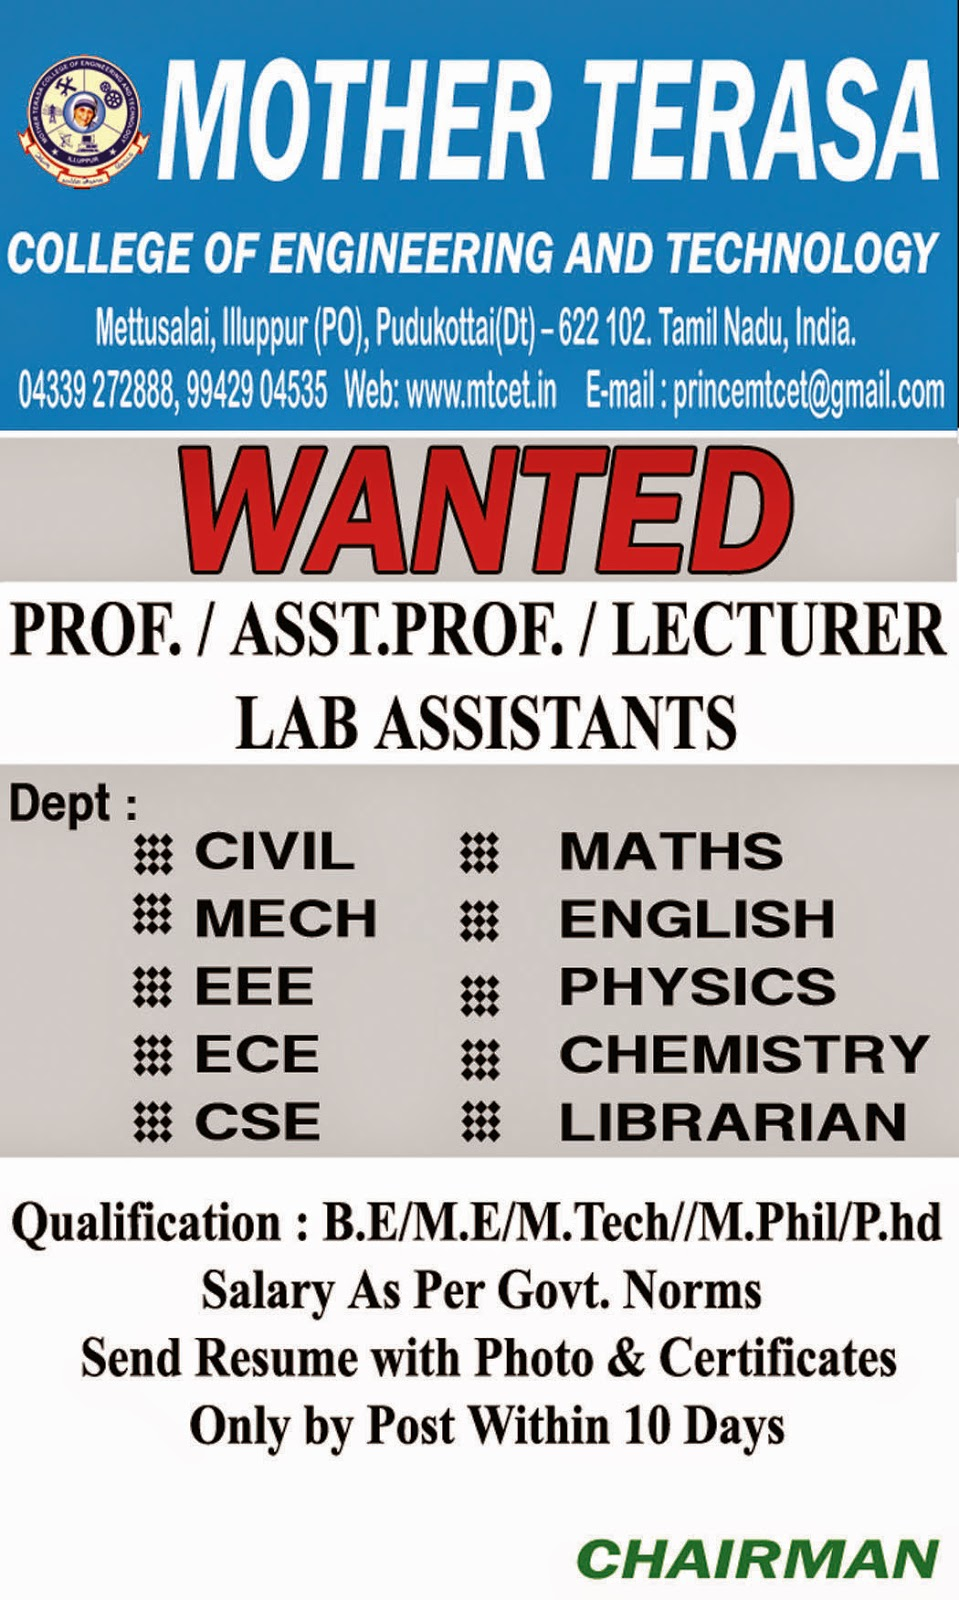 Mother Terasa College of Engineering and Technology Wanted ...